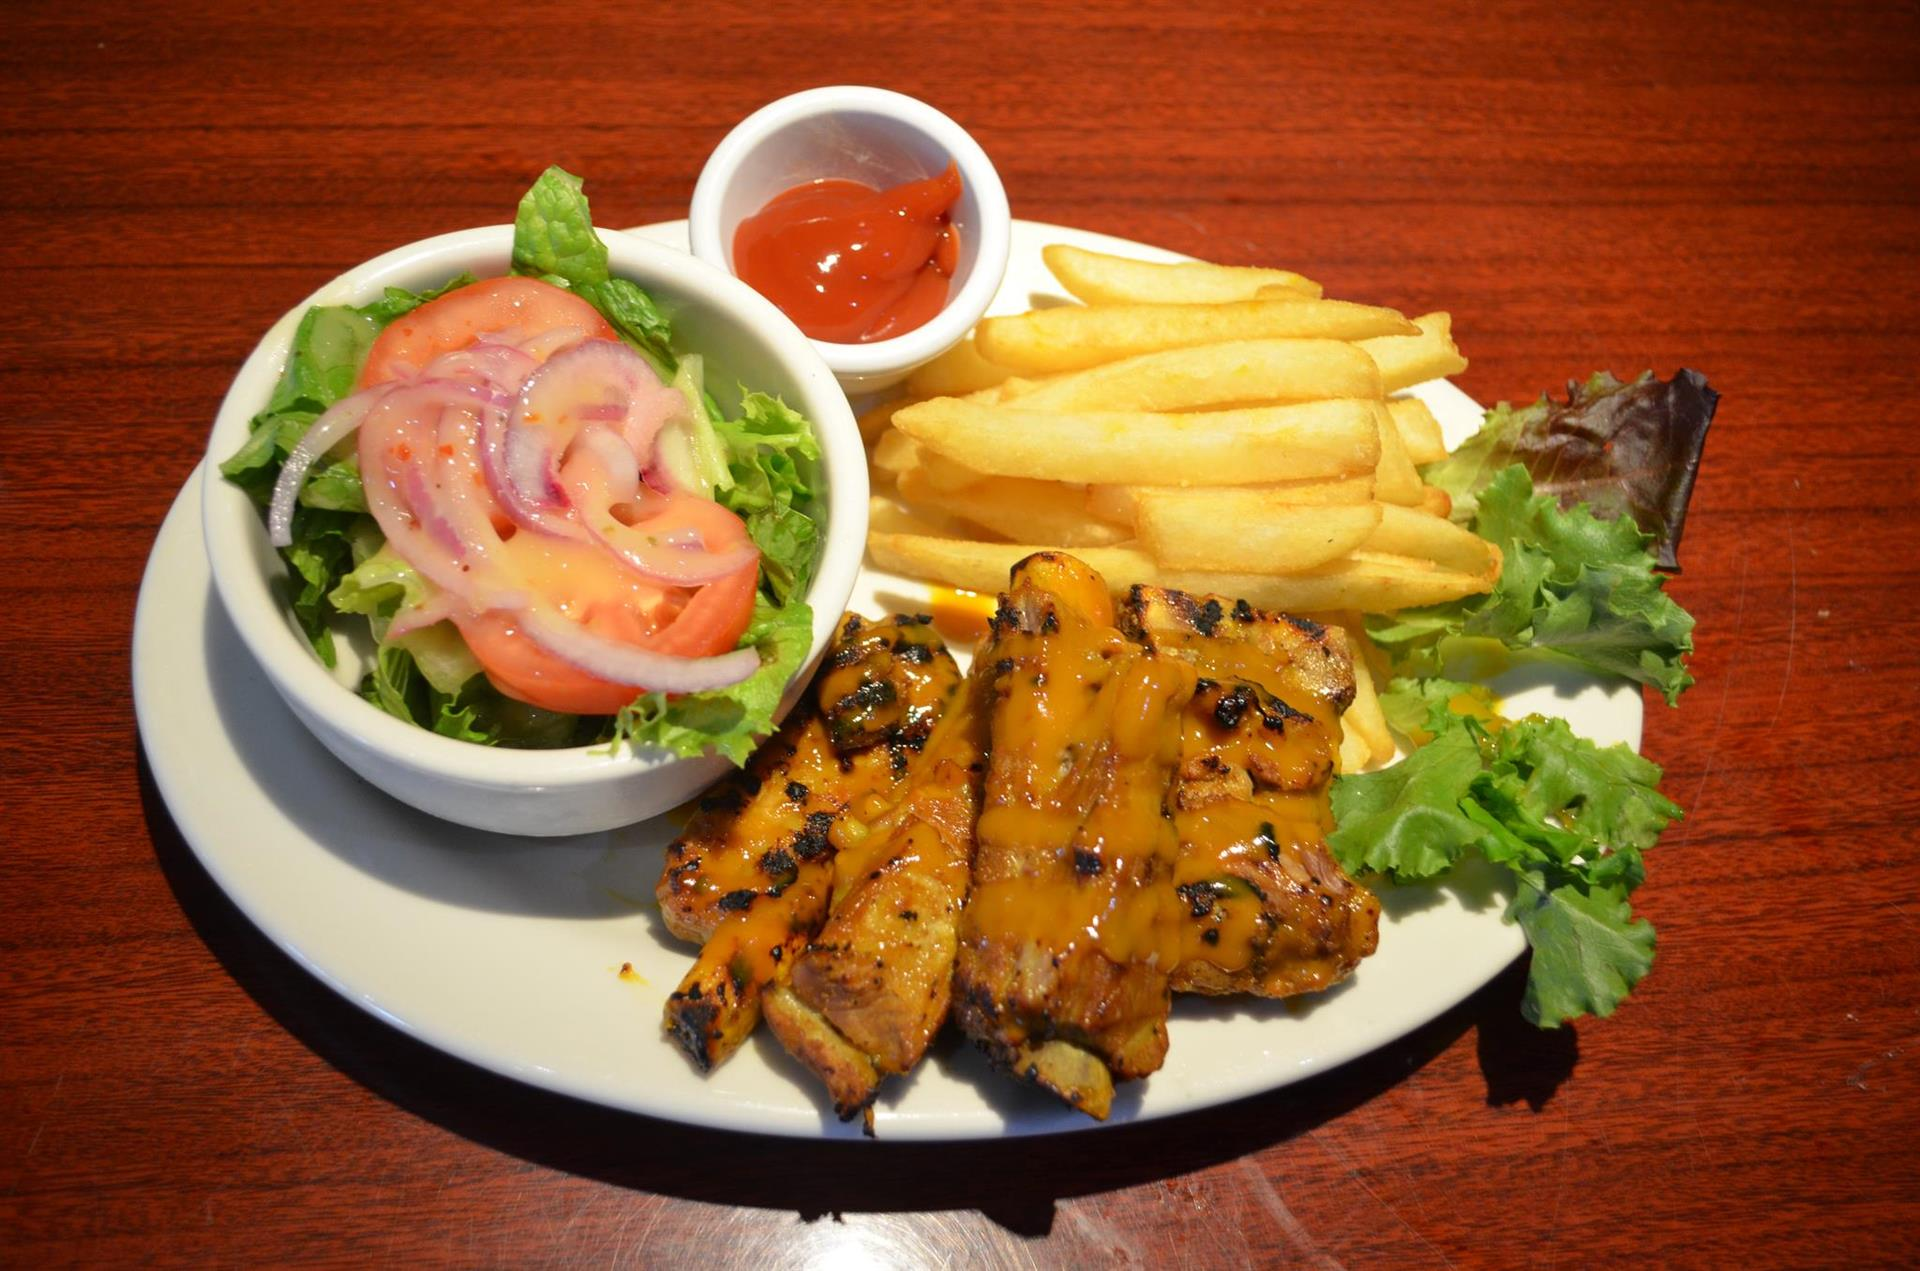 chicken and yucca fries